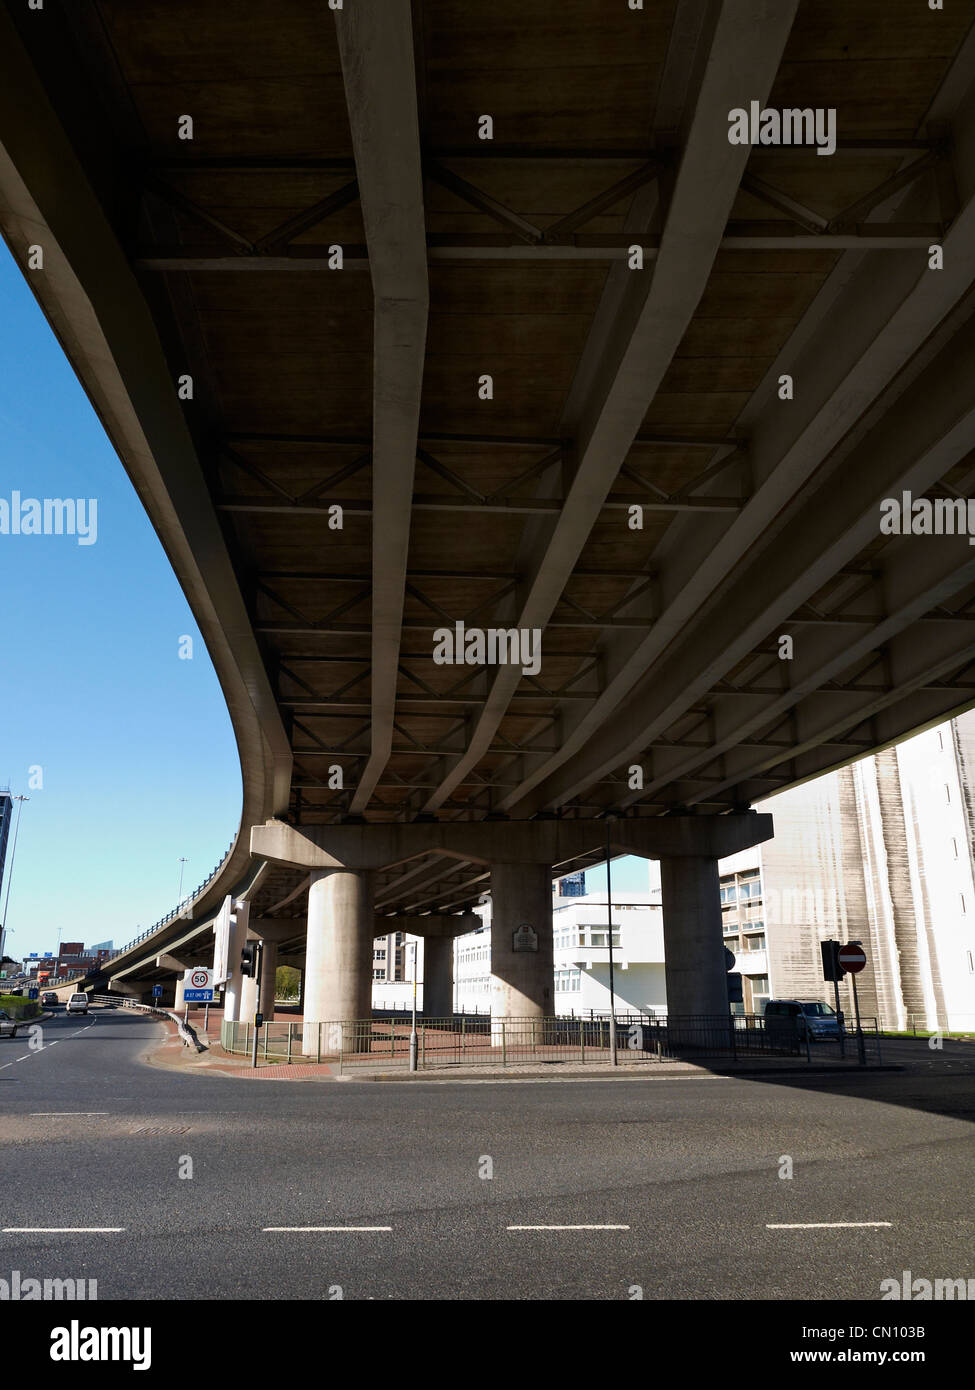 Under the Mancunian Way in Manchester UK - Stock Image